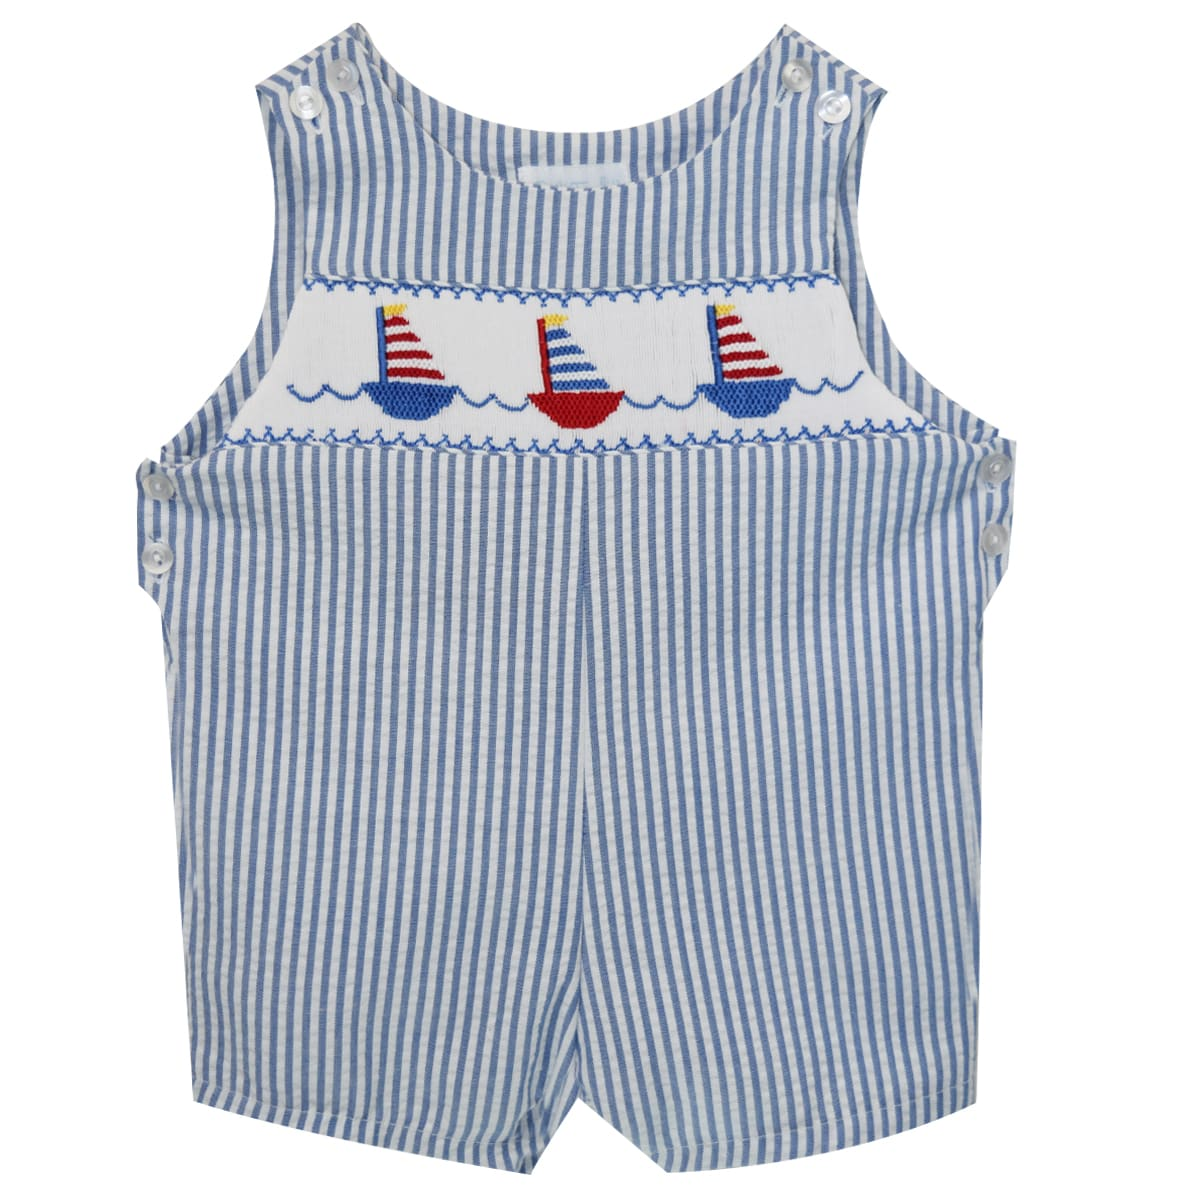 Cat Boat Race Smocked Shortall - Vive La Fête - Online Apparel Store